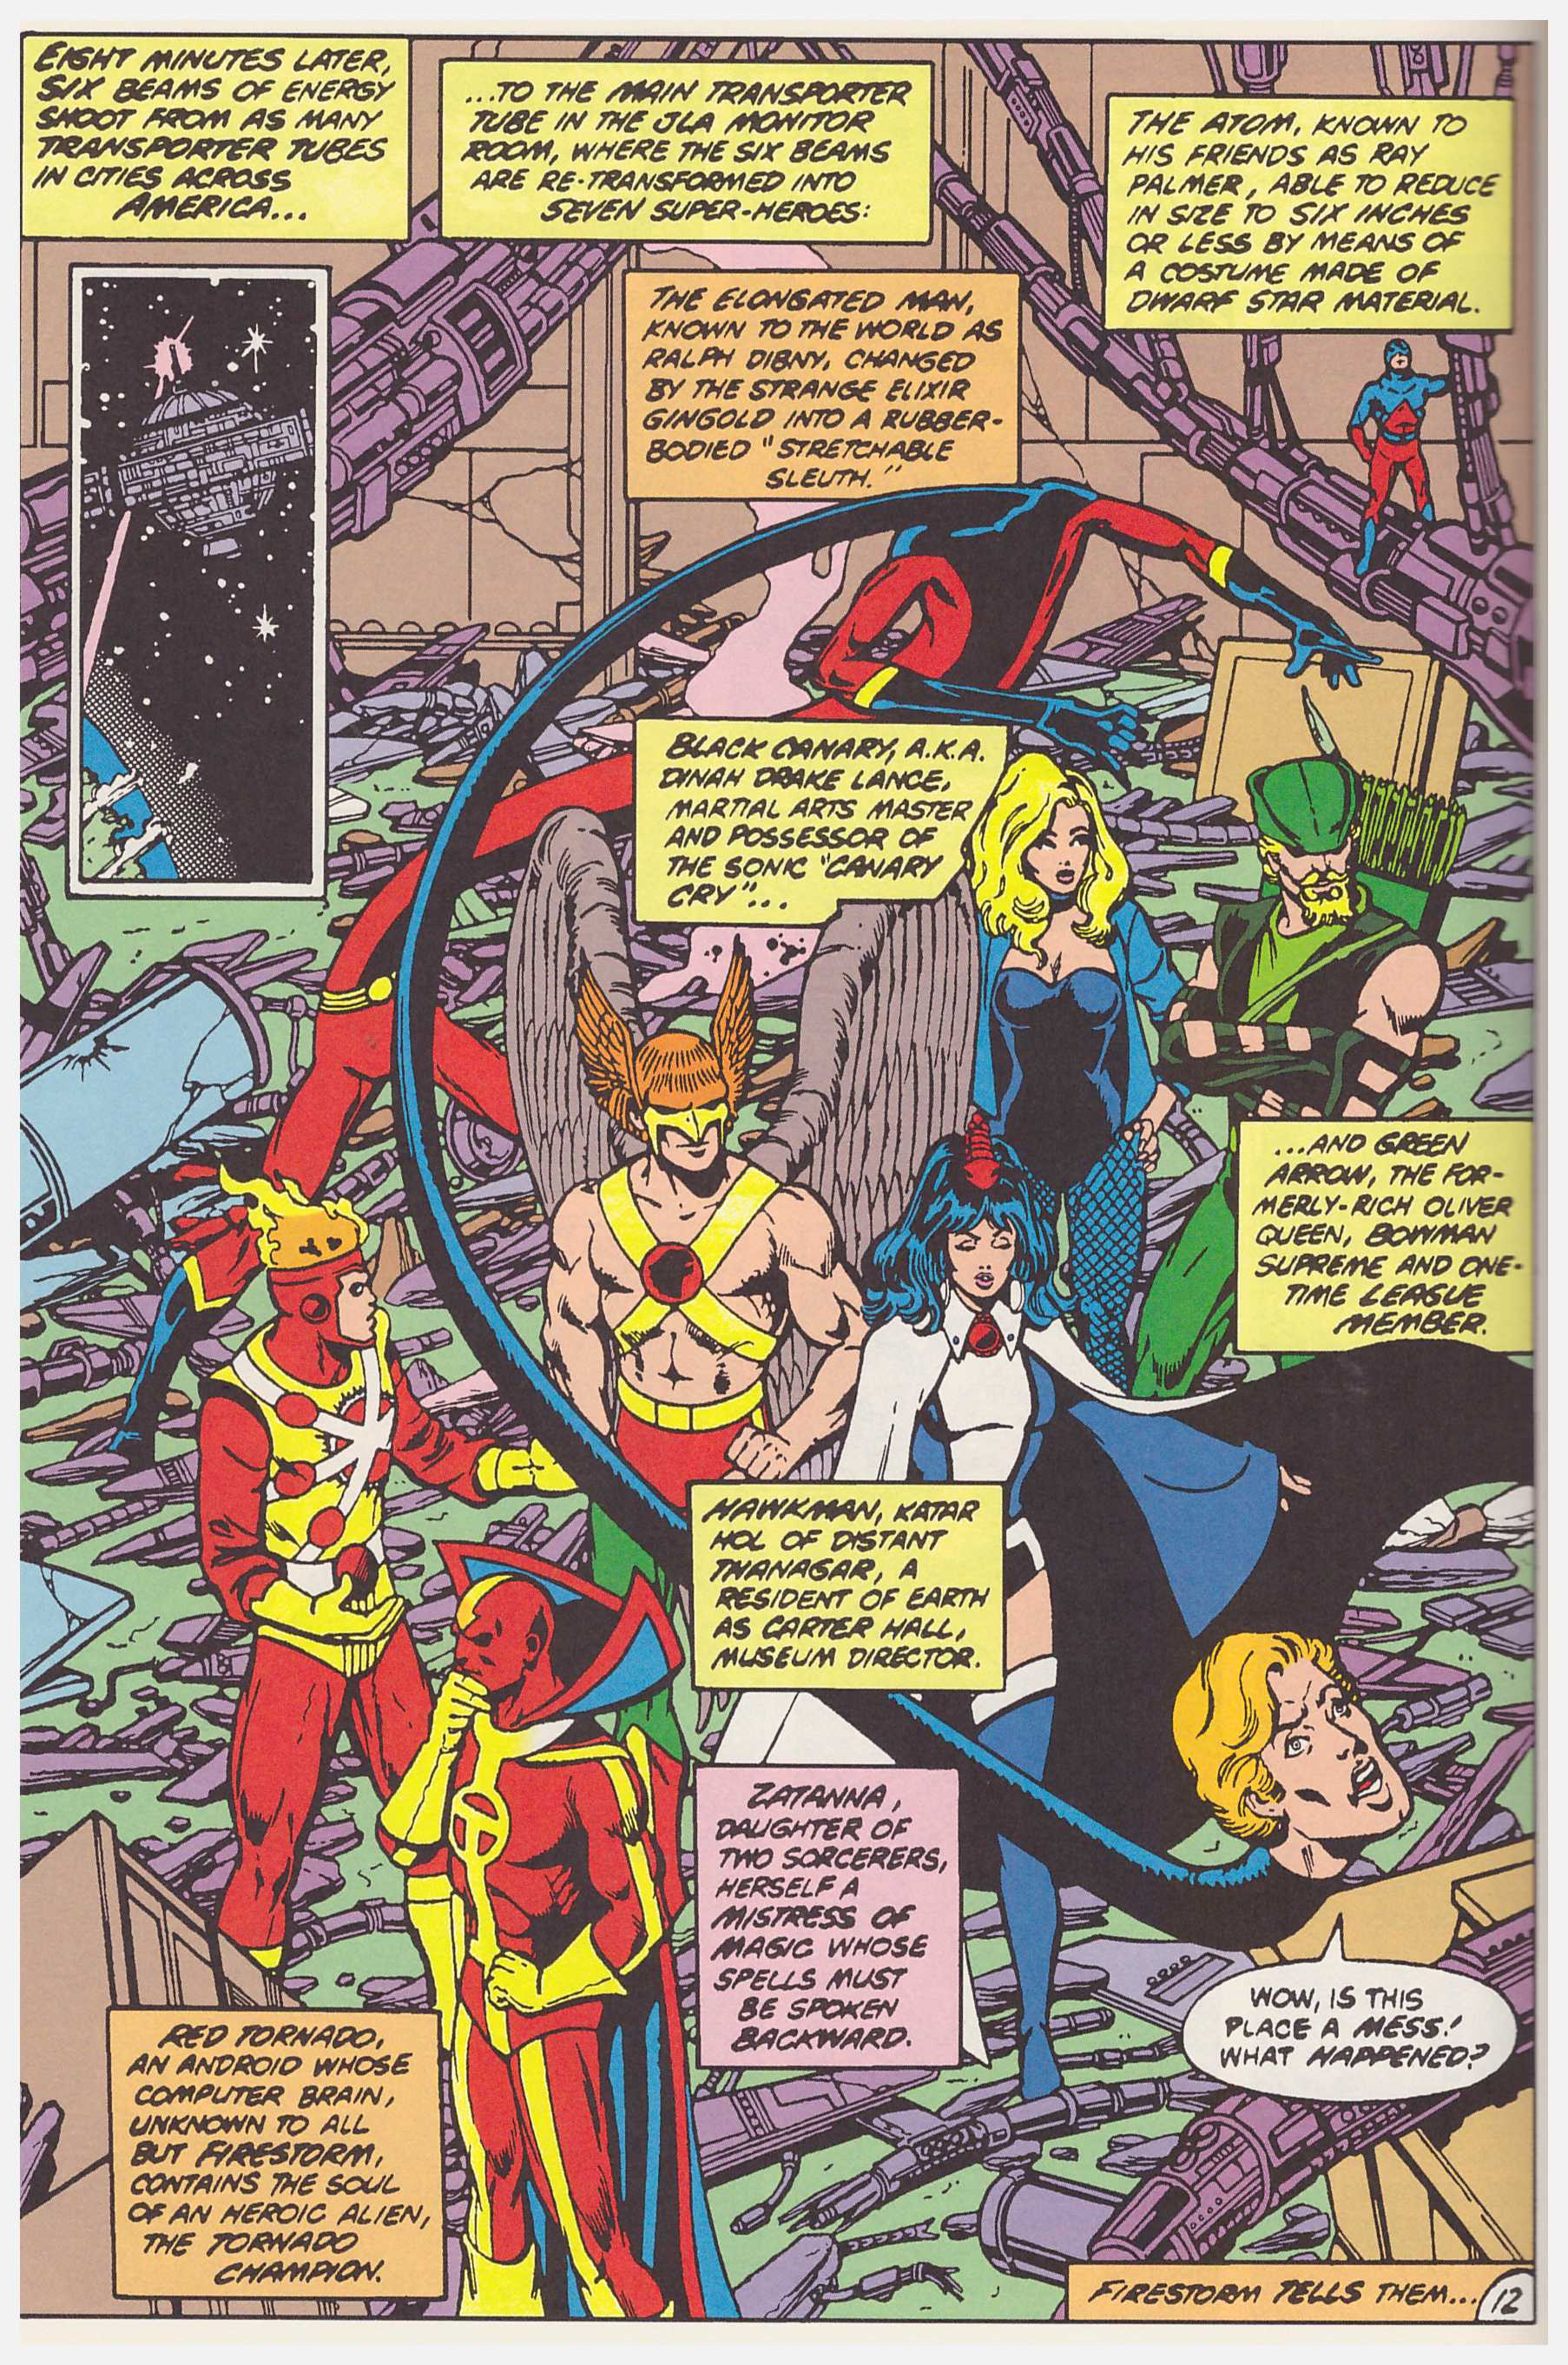 Justice League of America by George Perez review